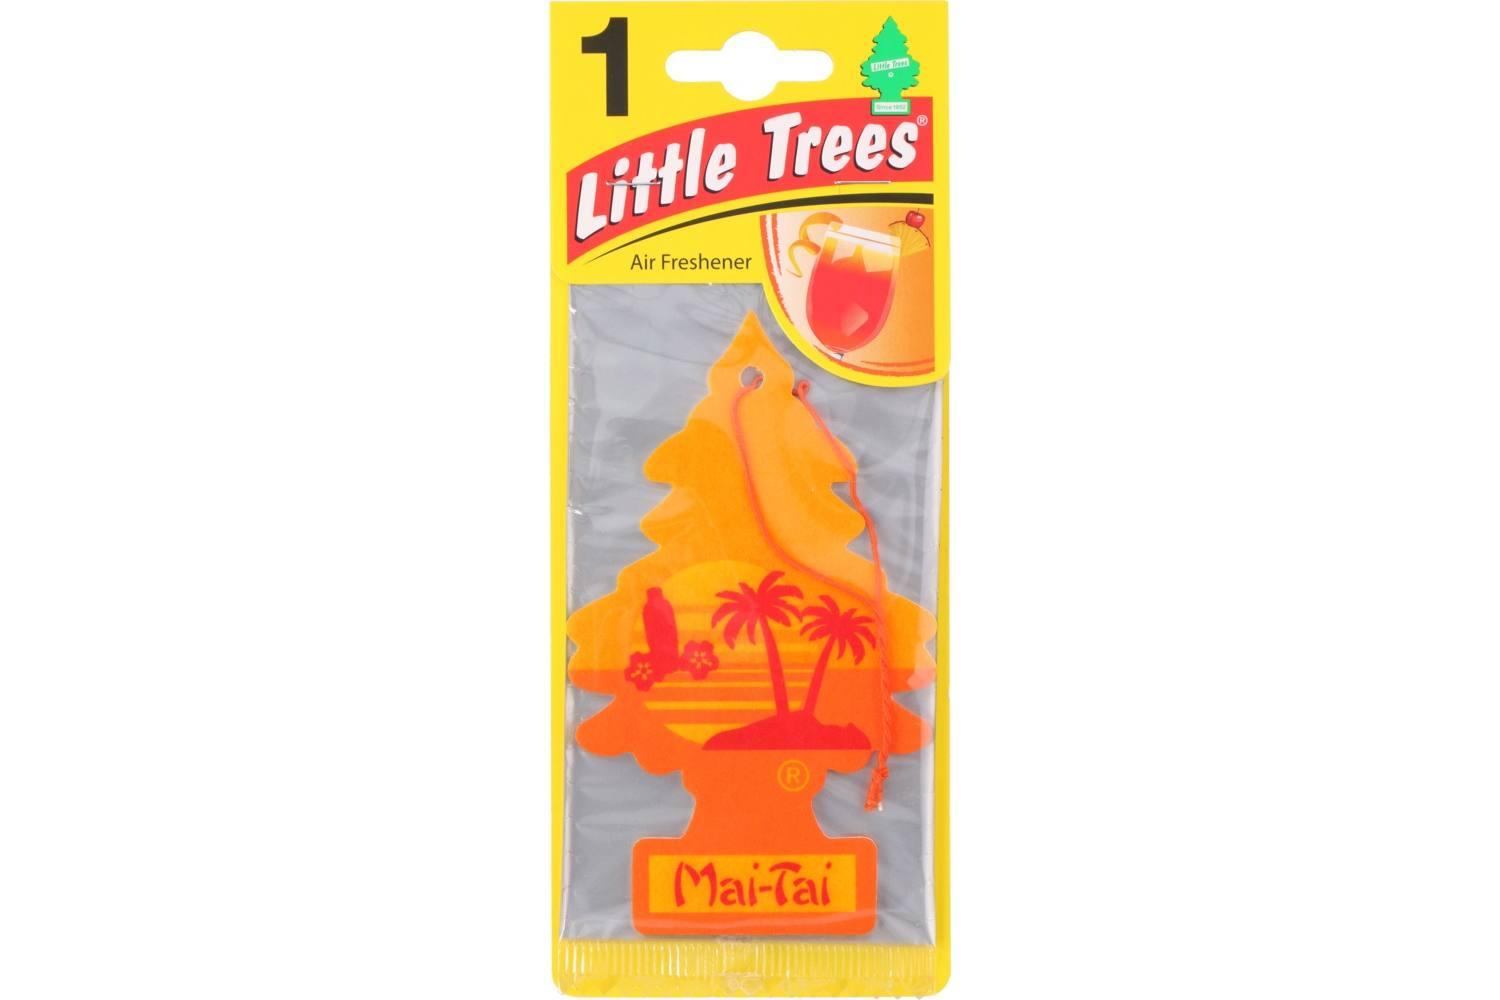 Air freshener, Little tree, mai-tai 1